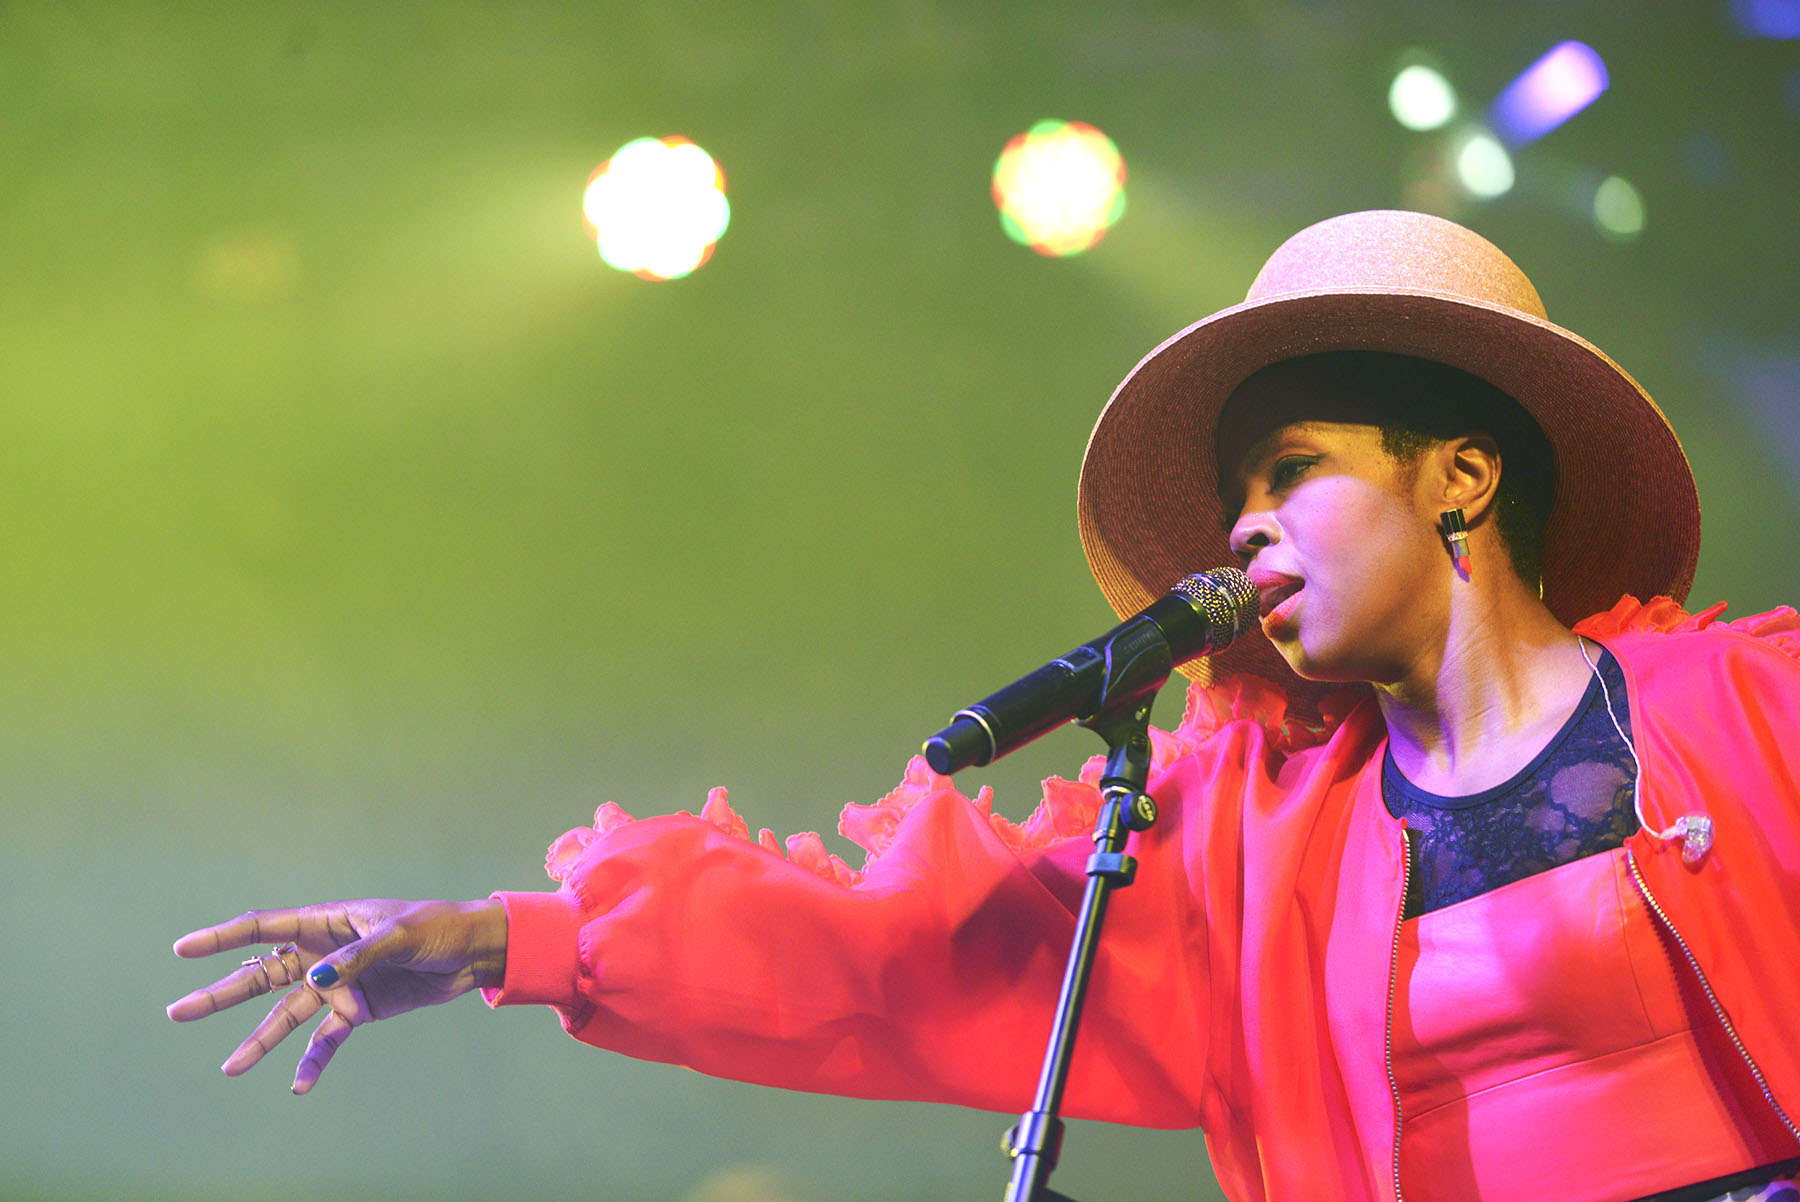 laurynhill1 copy.jpg